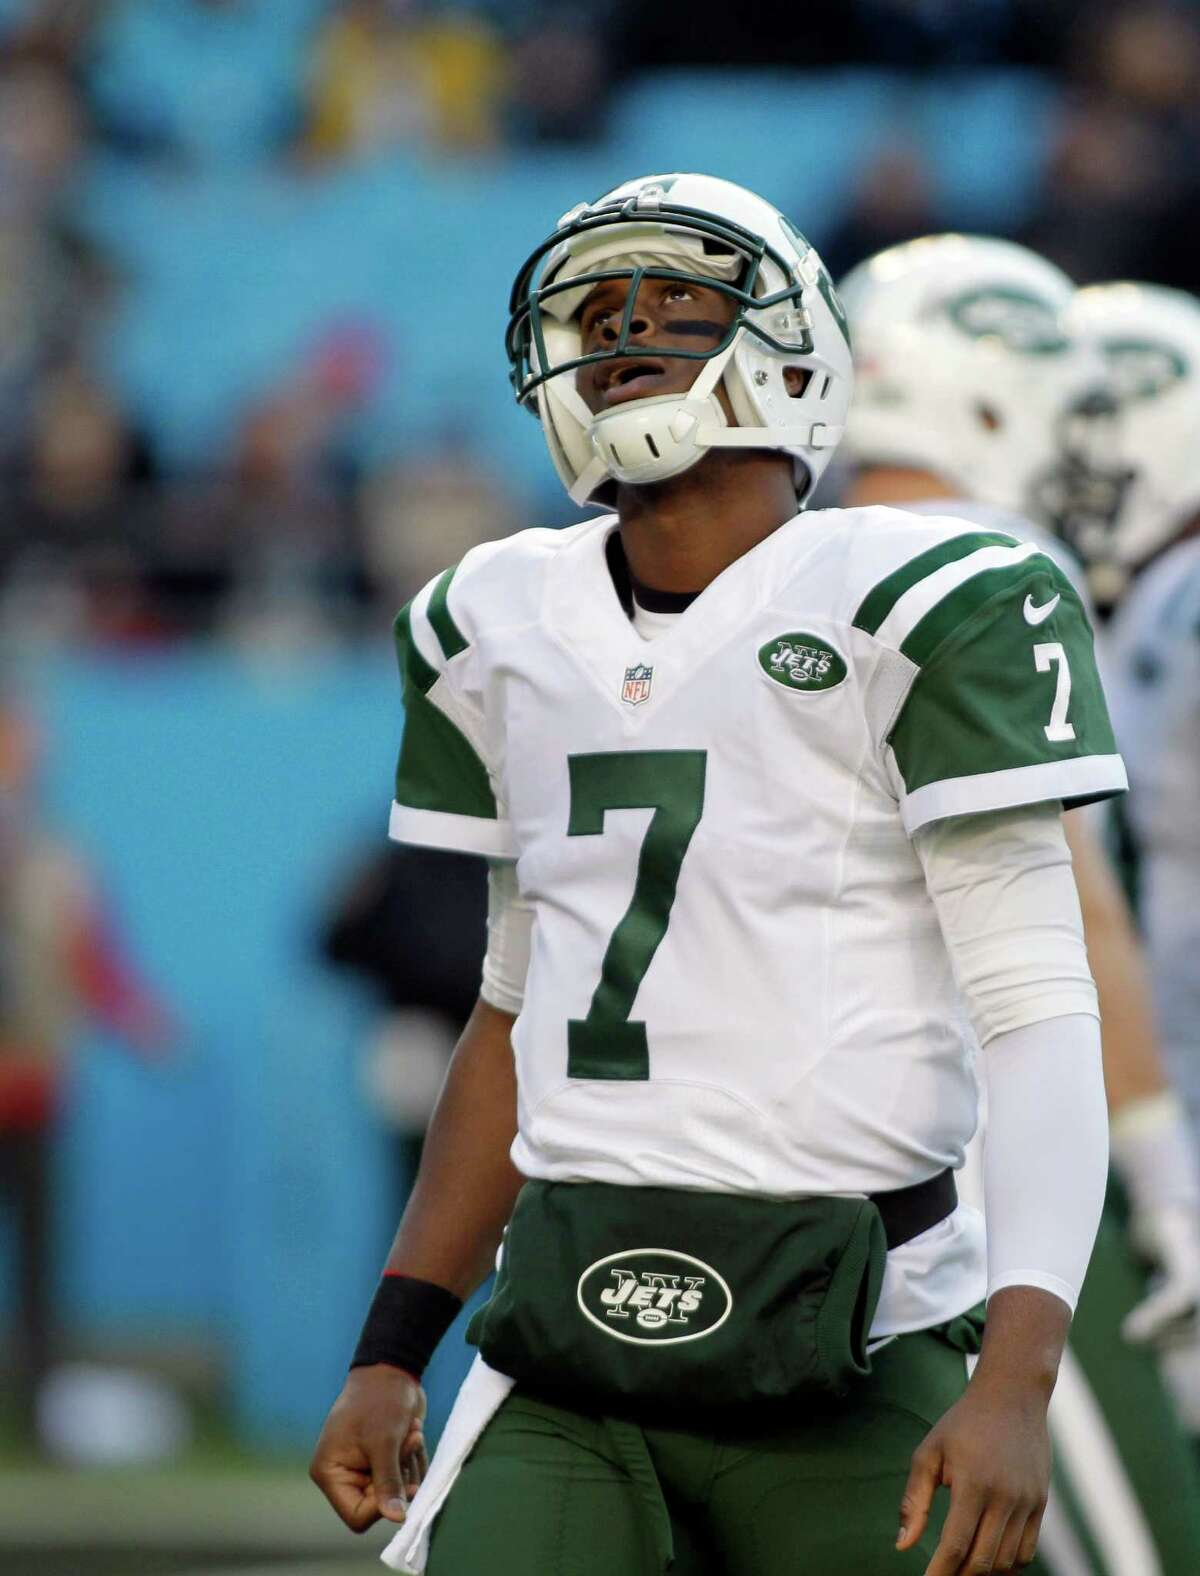 New York Jets quarterback Geno Smith (7) looks up after being sacked by the Carolina Panthers during the first half of an NFL football game in Charlotte, N.C., Sunday, Dec. 15, 2013. (AP Photo/Bob Leverone) ORG XMIT: NCCB105